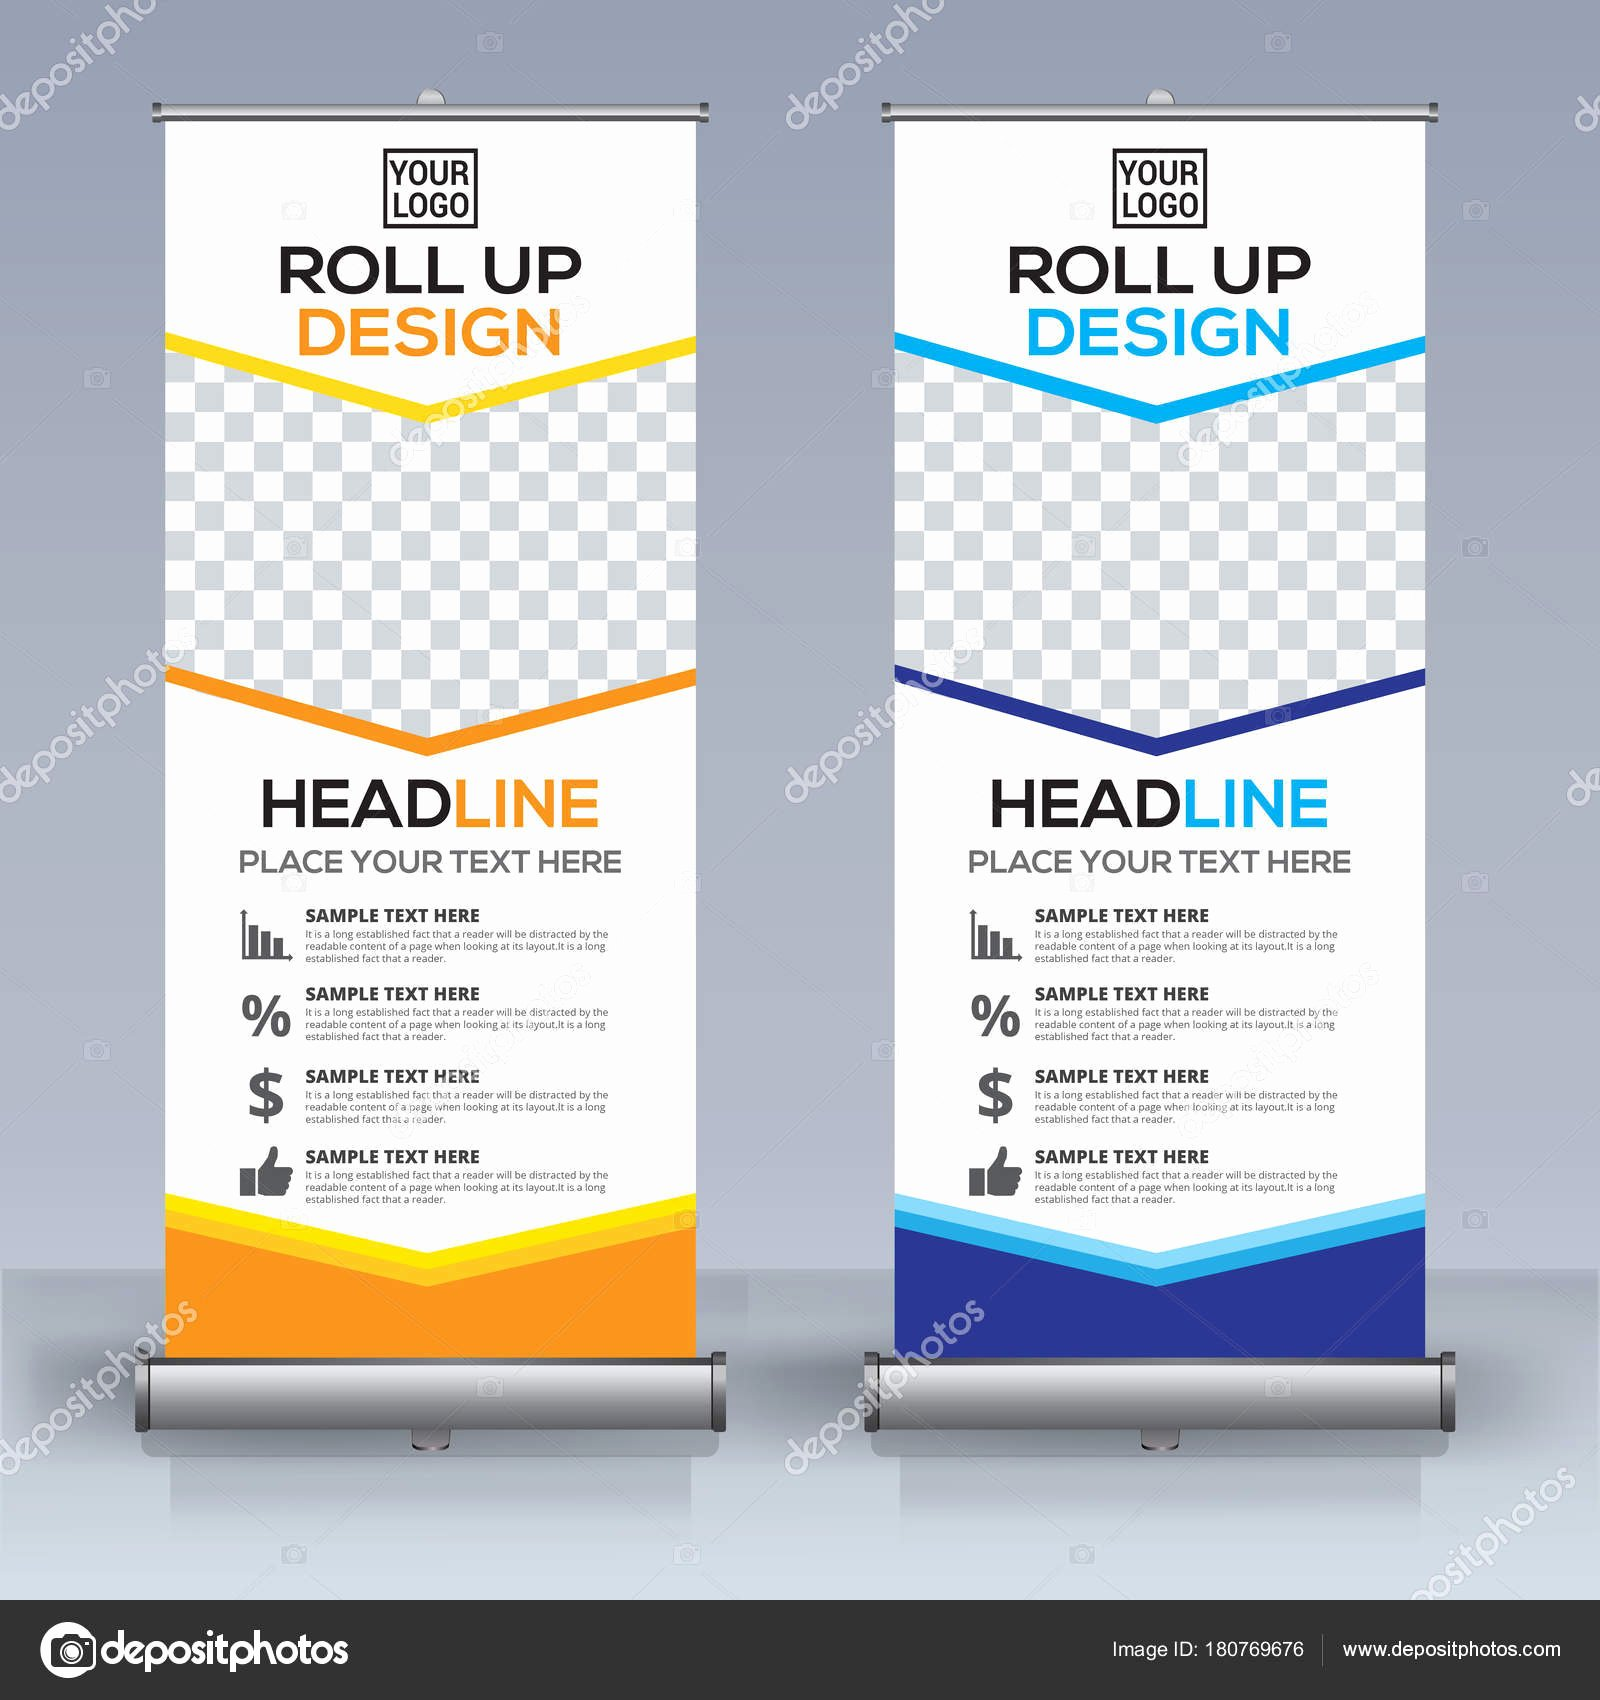 Retractable Banner Template Psd Fresh Enrole Modelo Design Bandeira Vertical Abstrato Puxe